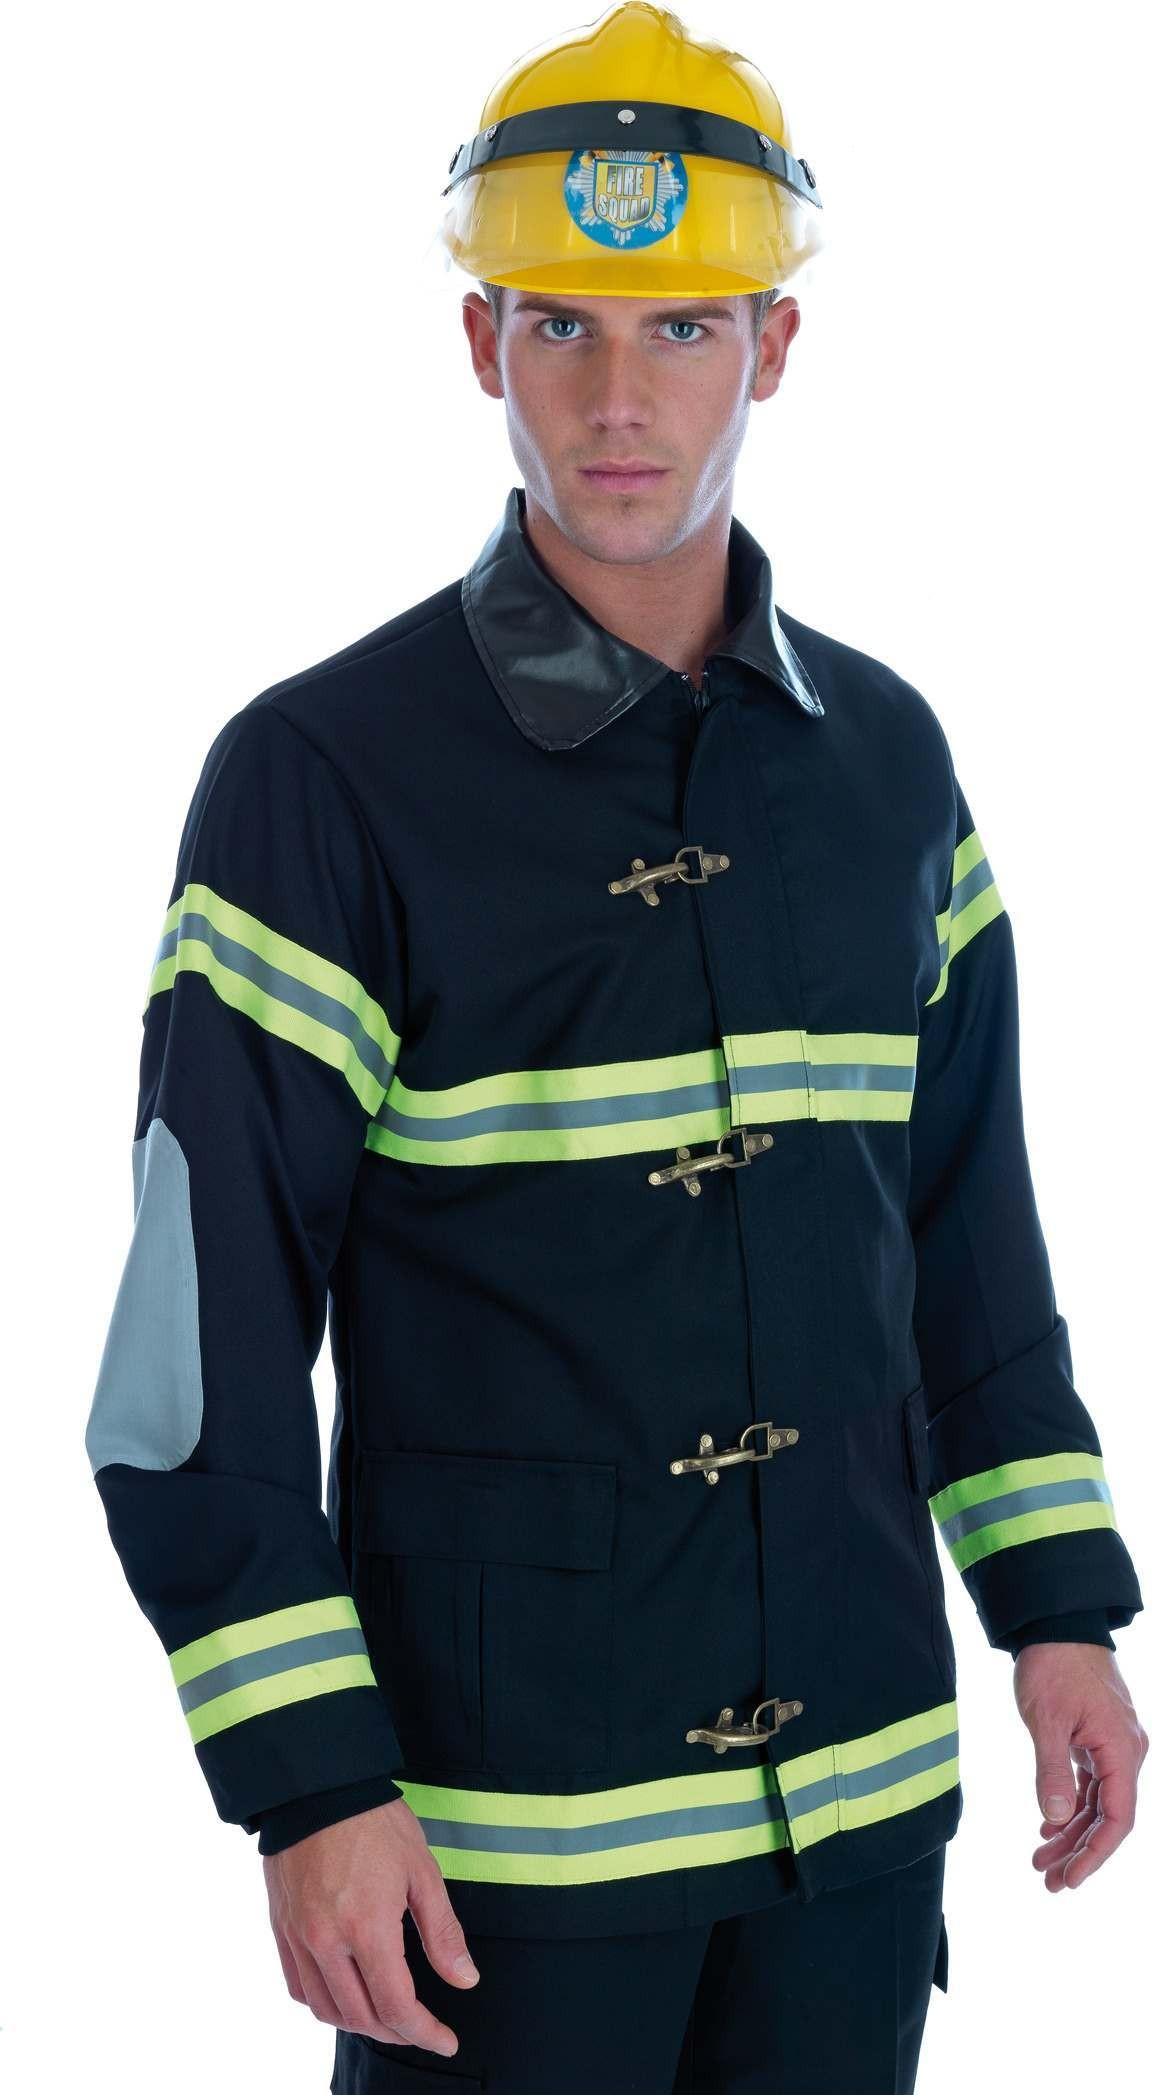 Fireman Costume Male Fancy Dress Costume Mens (Fire Service , Hen & Stag)